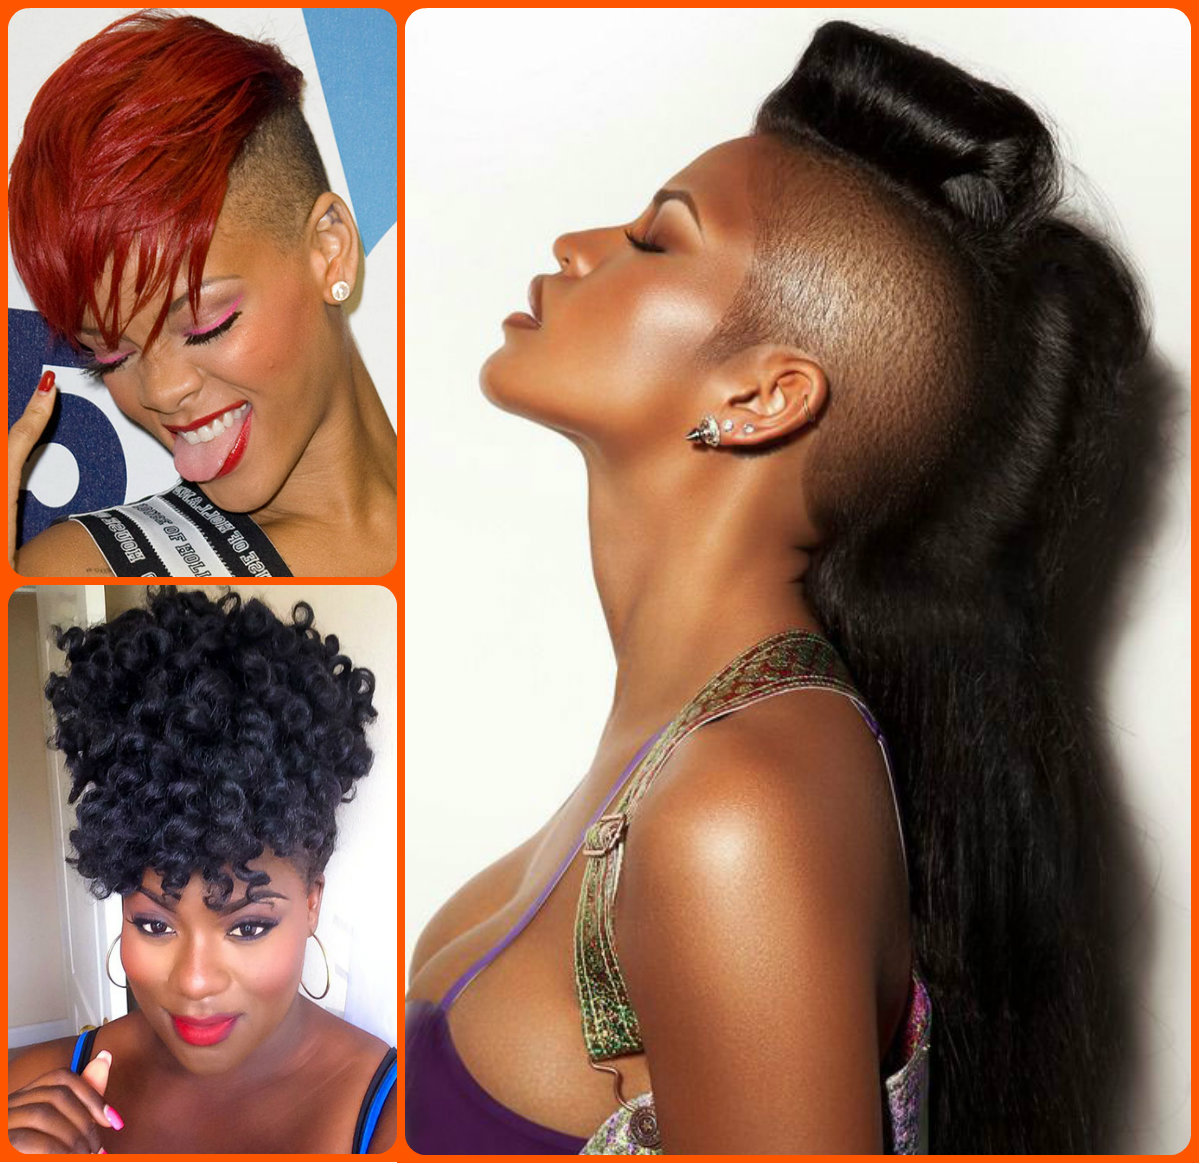 jazzy mohawk hairstyles for black women | hairstyles 2017, hair